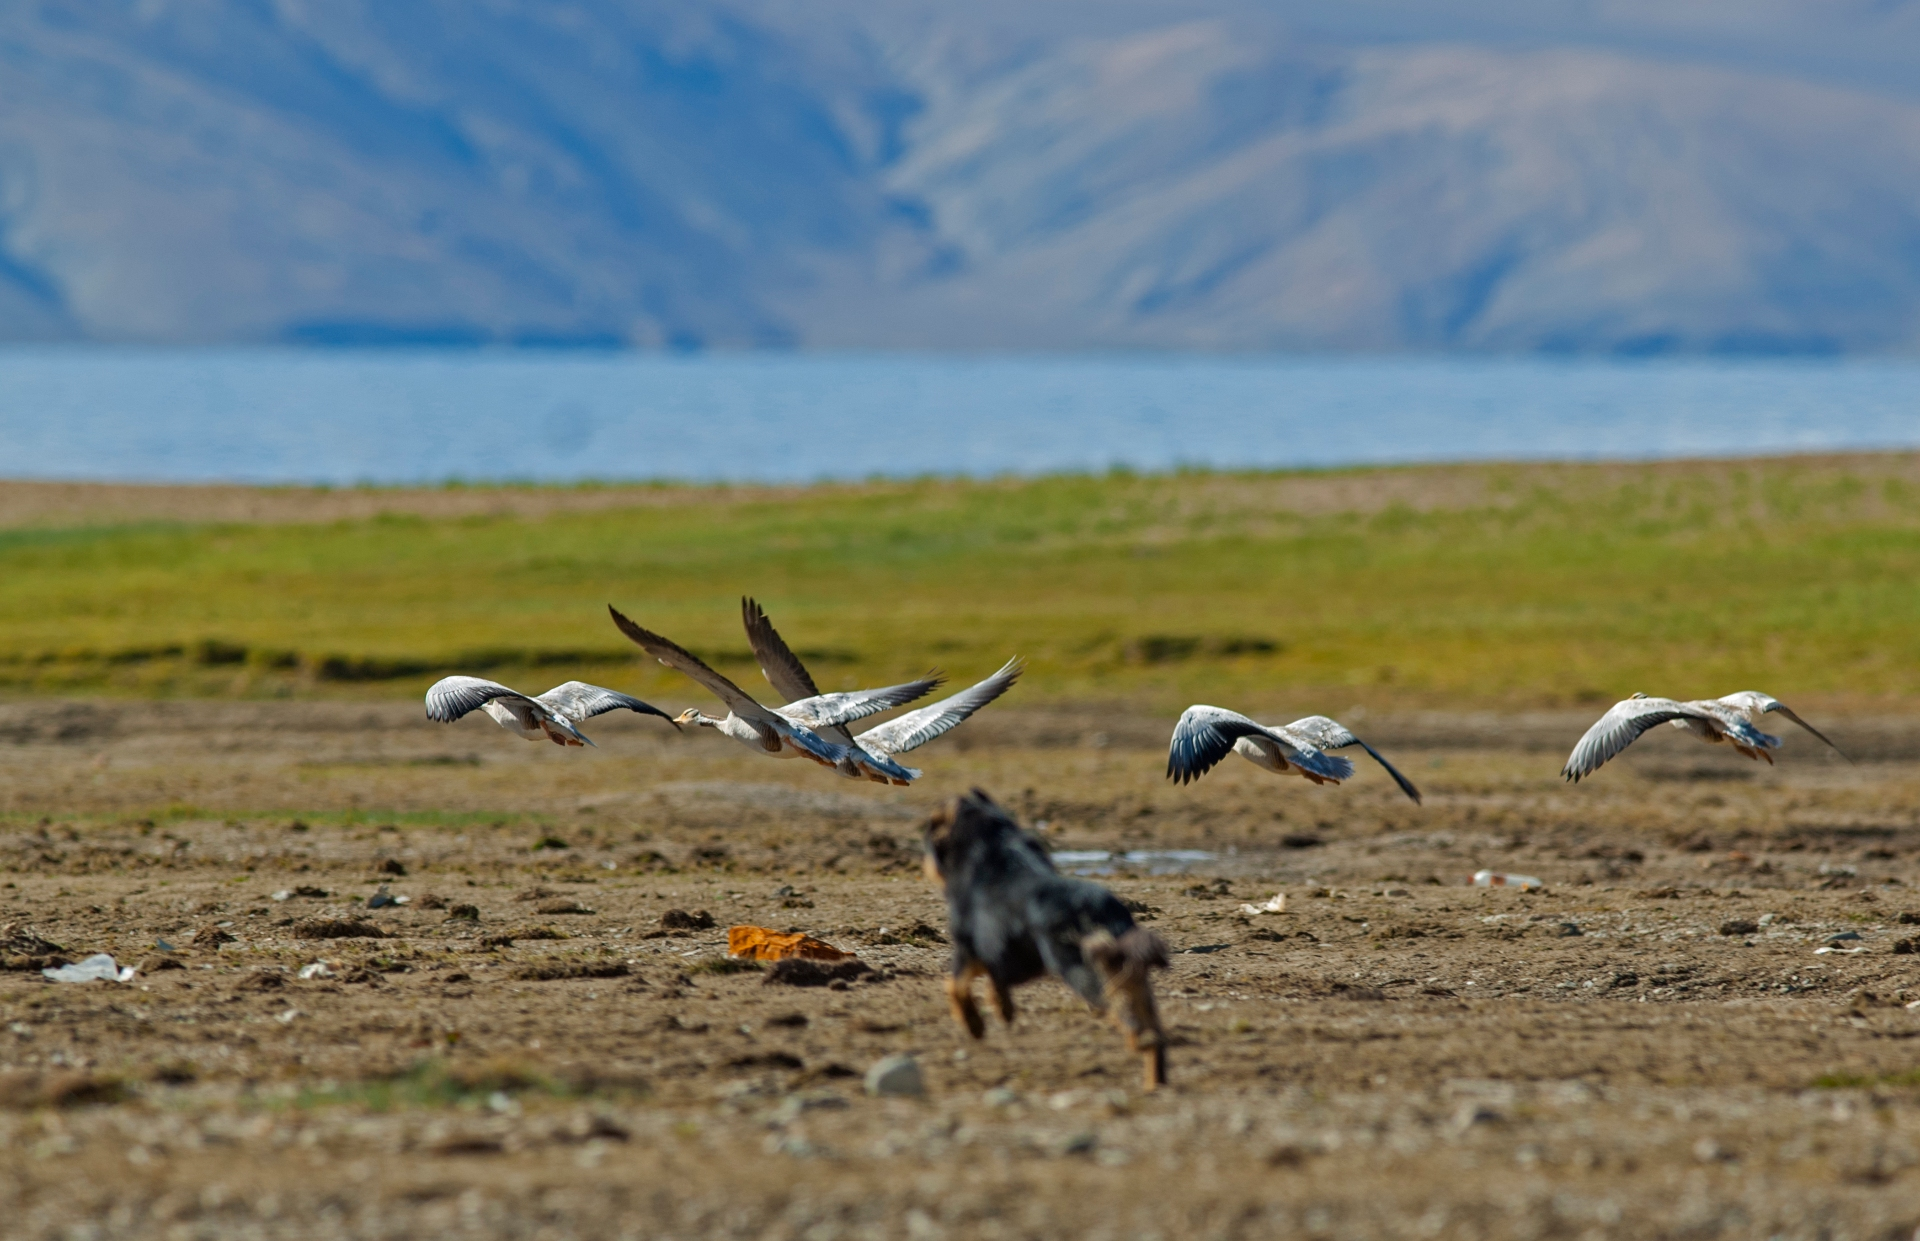 Dogs attacking wildlife has now become a common problem across the Trans-Himalayas. Here, a dog chases a flock of bar-headed geese in Changthang. Photo: Dhritiman Mukherjee